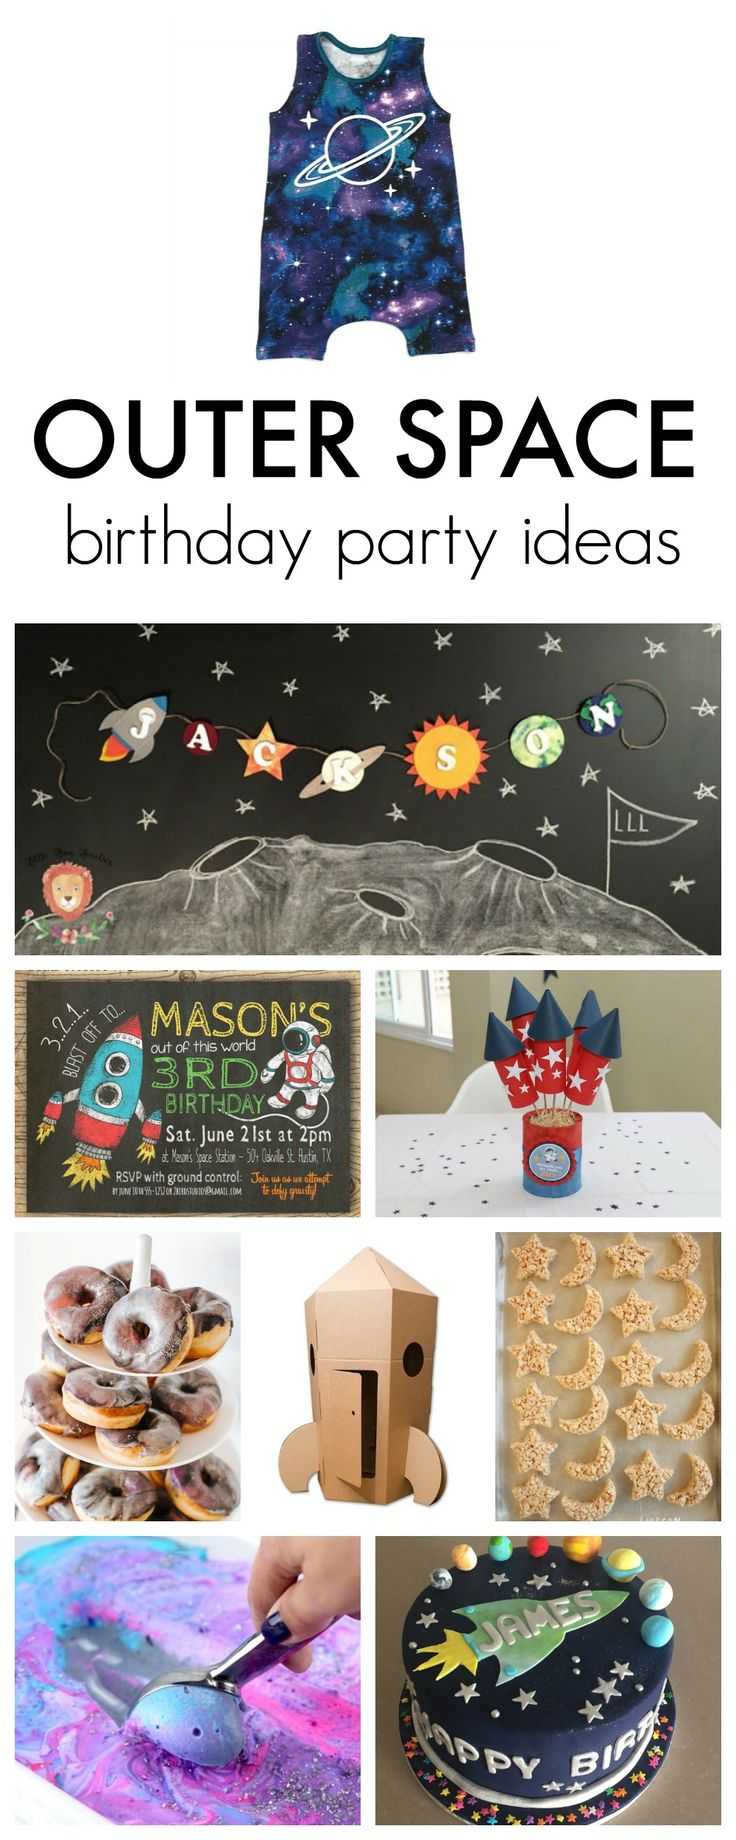 The cutest ideas for an outer space themed birthday party!!